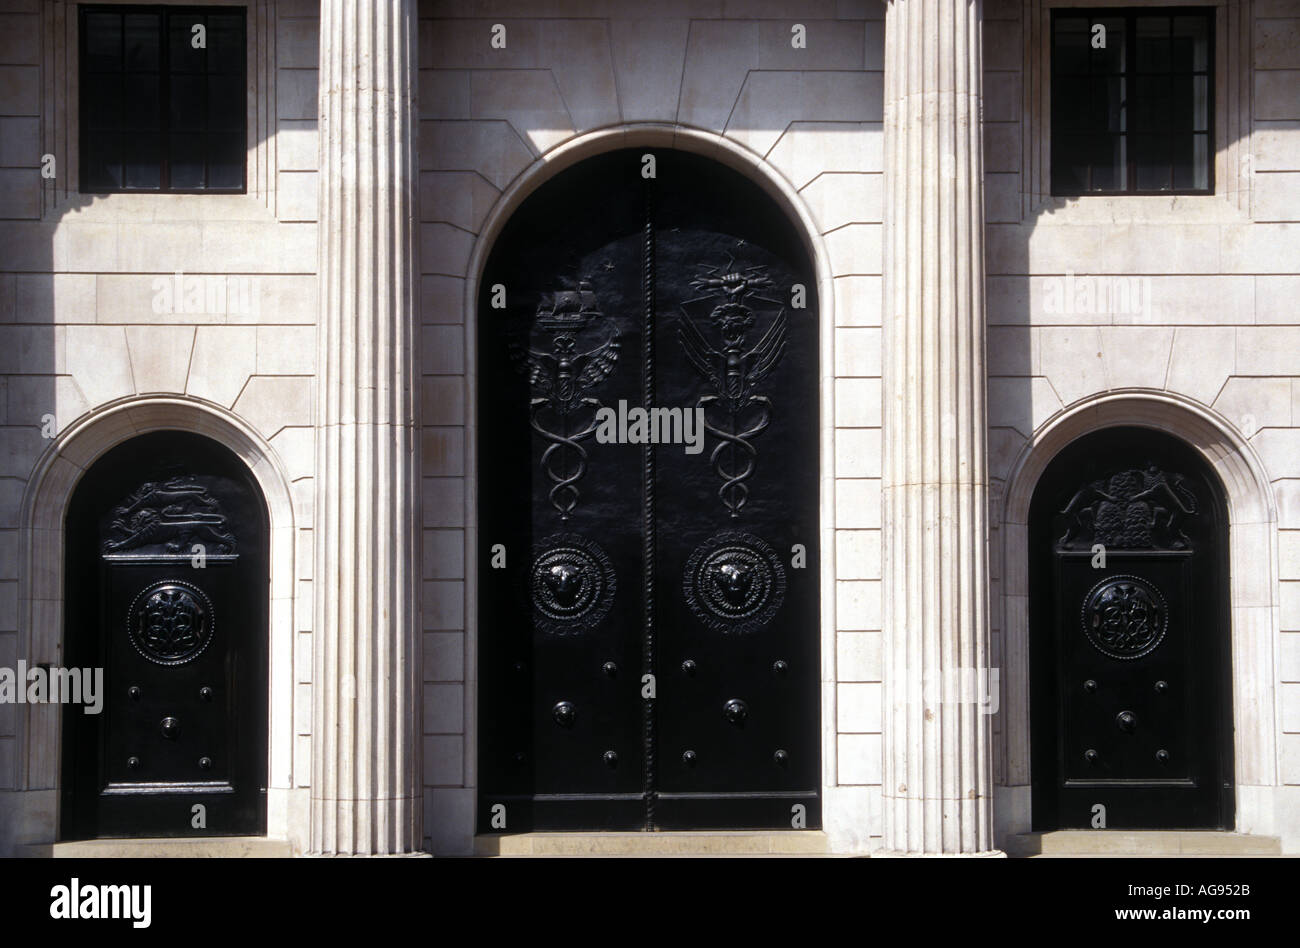 Entrance doors to the Bank of England City of London - Stock Image